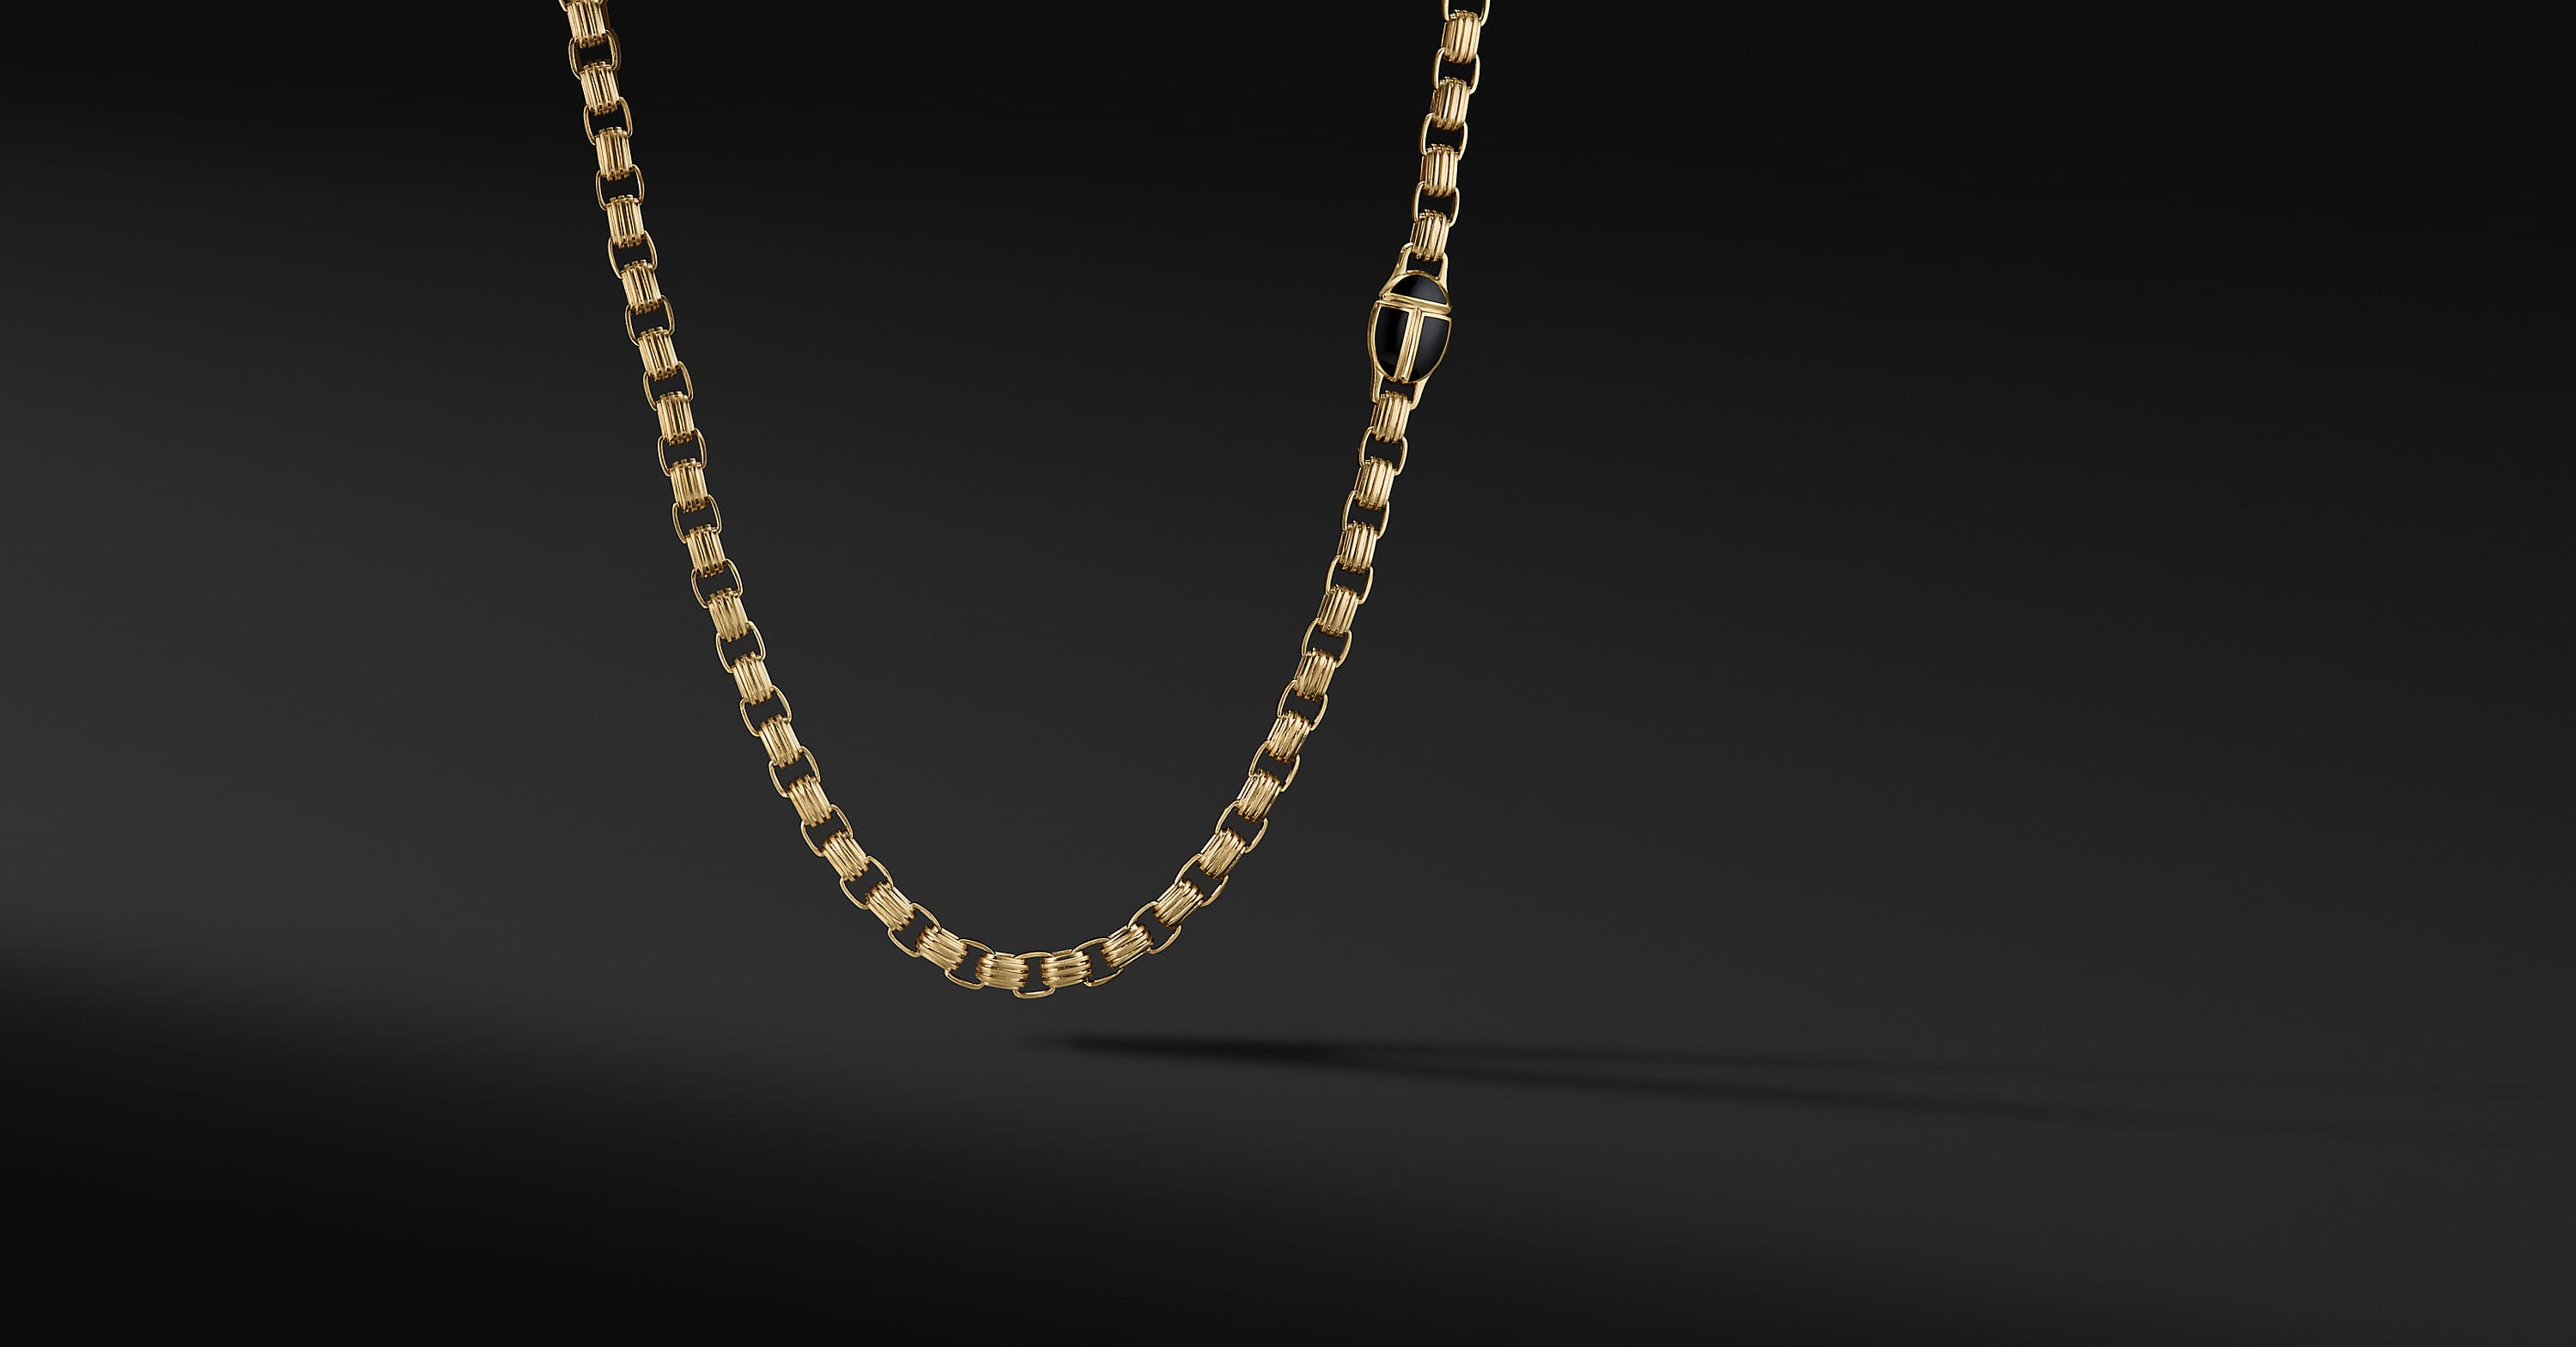 Cairo Chain Link Necklace in 18K Yellow Gold,  7.4mm